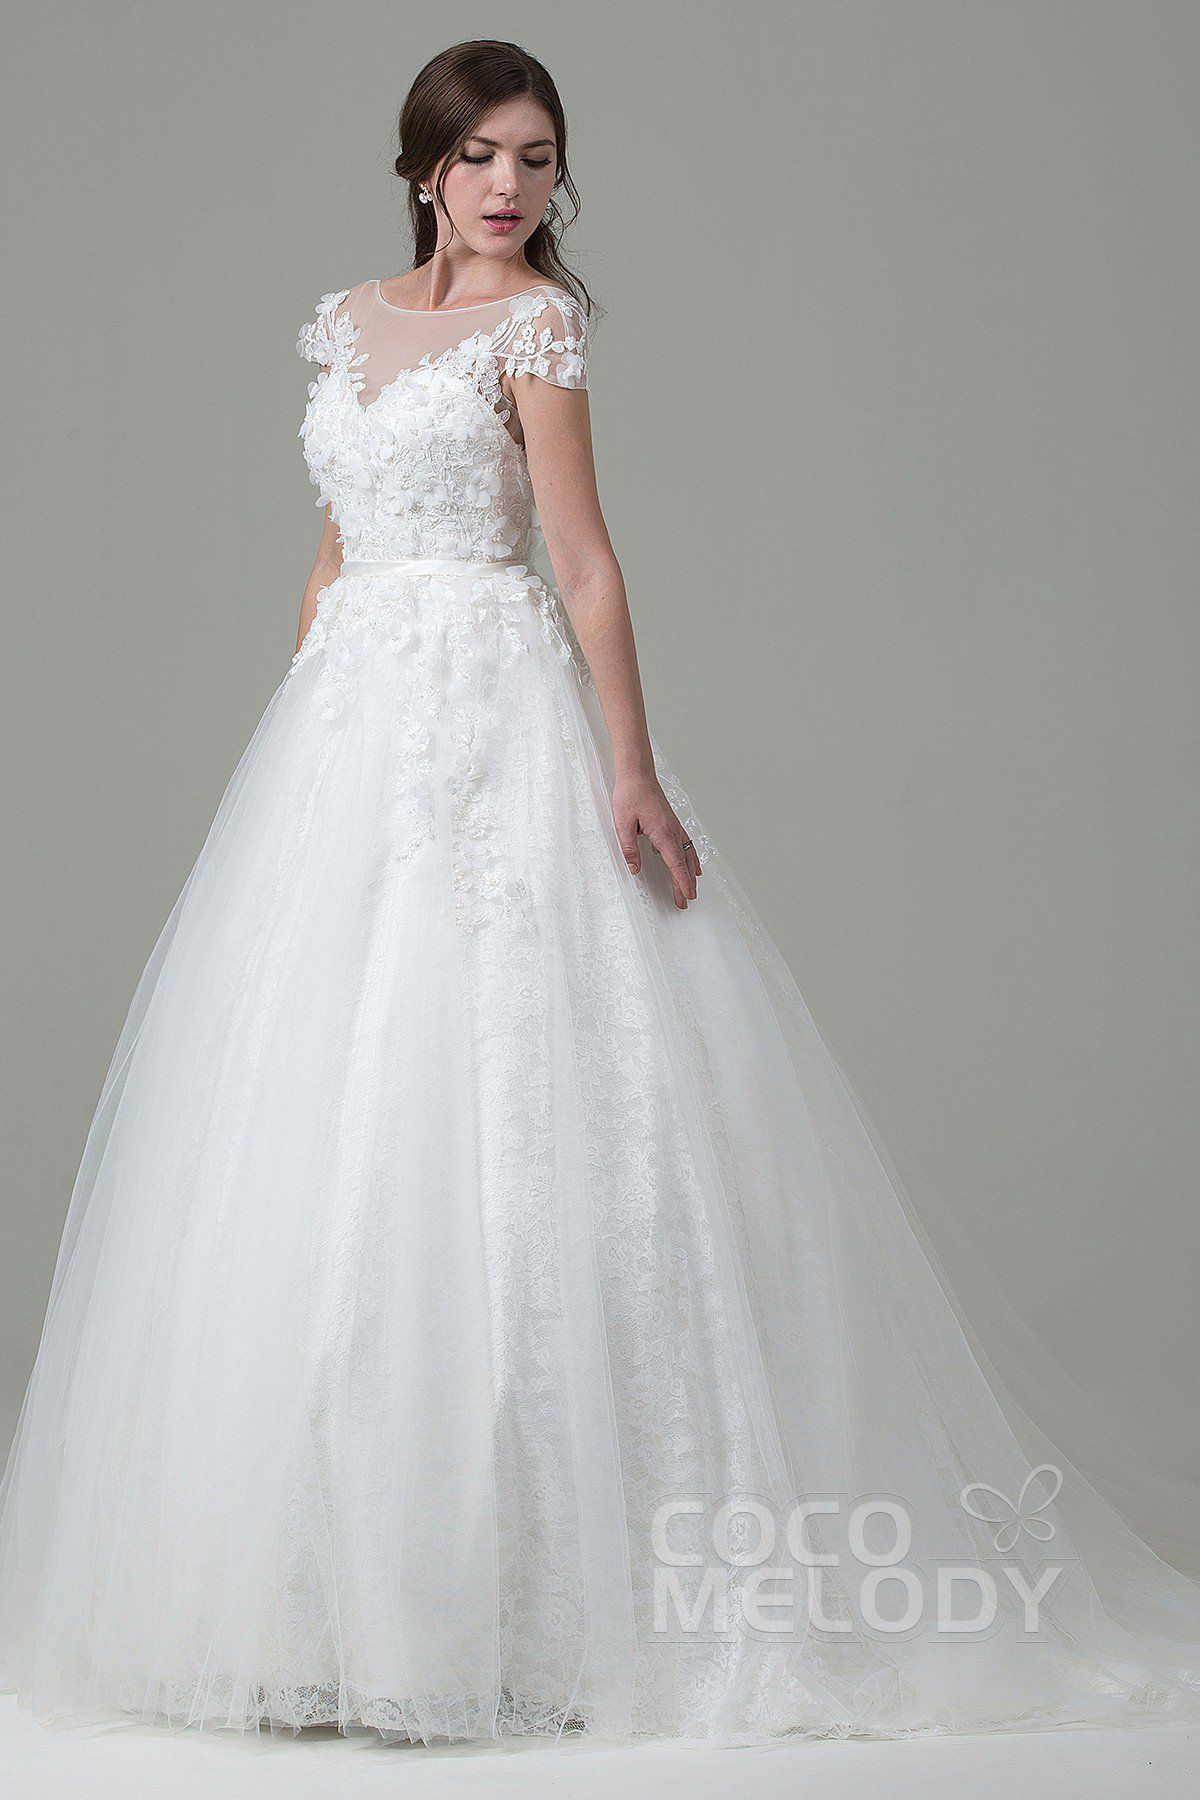 Usd 499 A Line Tulle Lace Open Back Wedding Dress Lwat14014 Open Back Wedding Dress Wedding Dresses Dresses